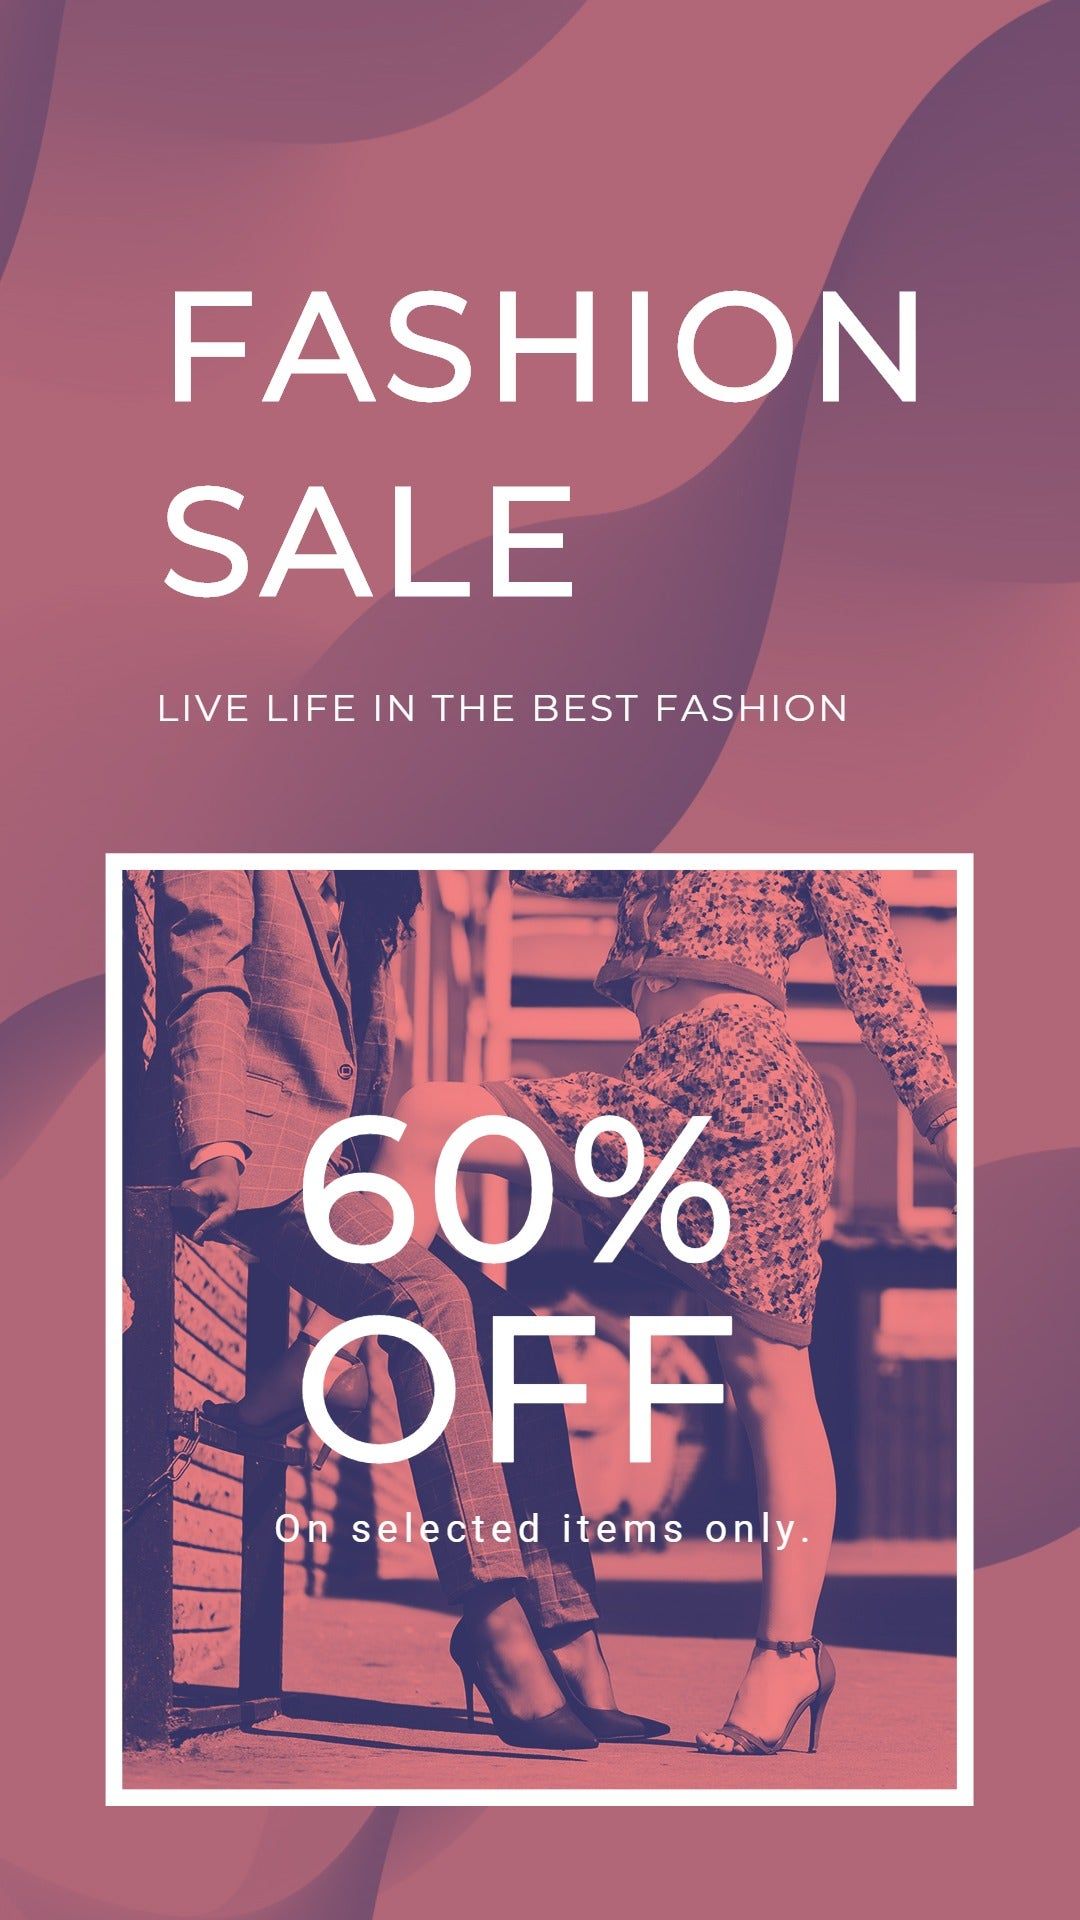 Fashion Sale Offers Whatsapp Image Template